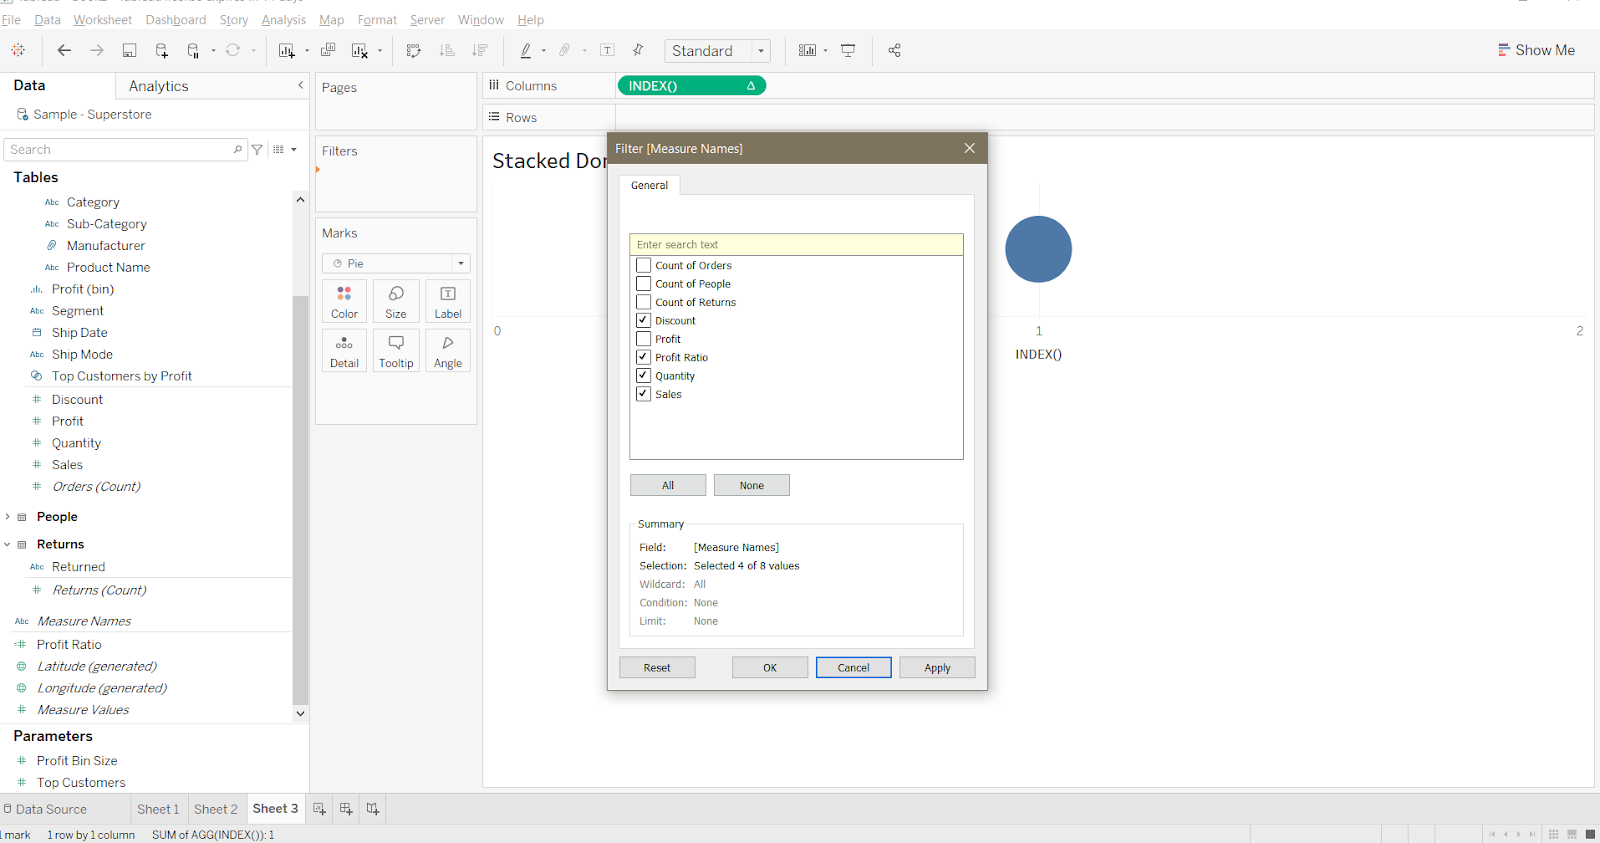 Filter feature of Tableau